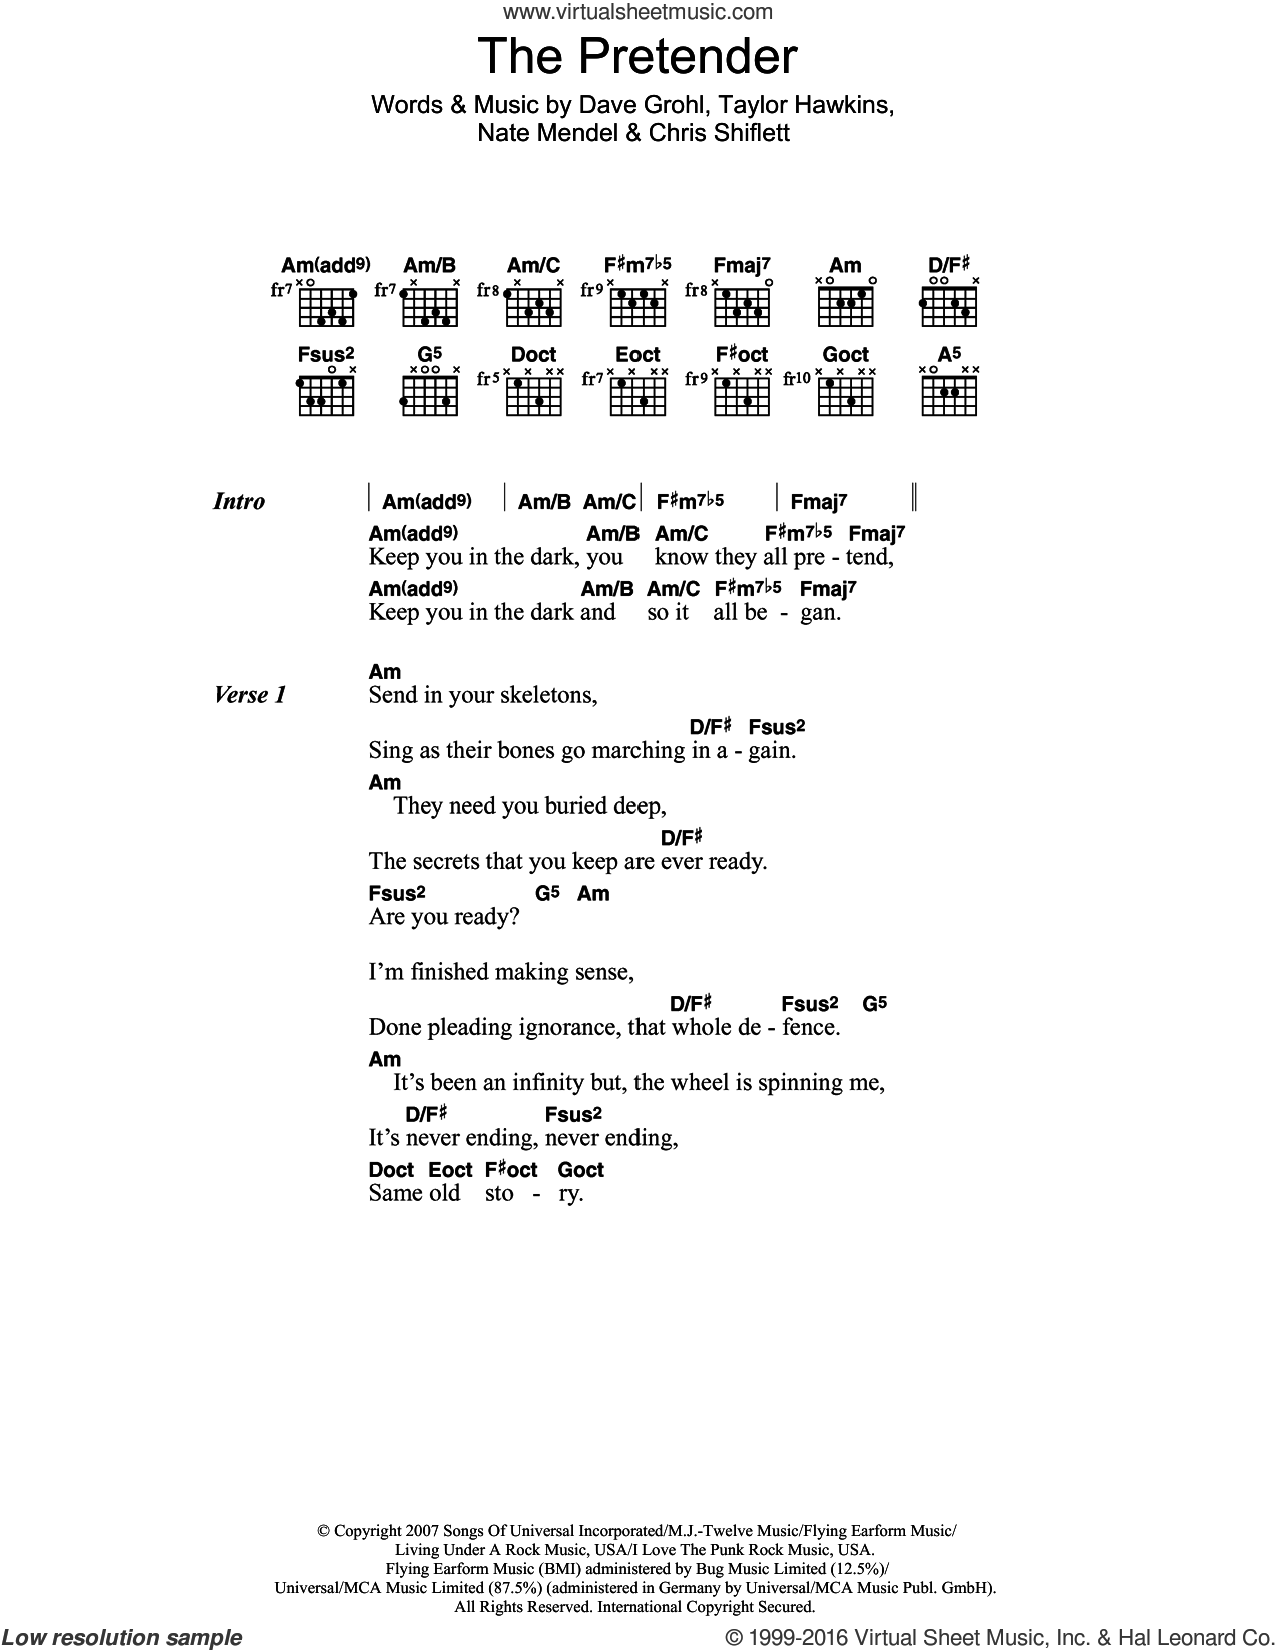 The Pretender sheet music for guitar (chords) by Foo Fighters, Chris Shiflett, Dave Grohl, Nate Mendel and Taylor Hawkins, intermediate skill level